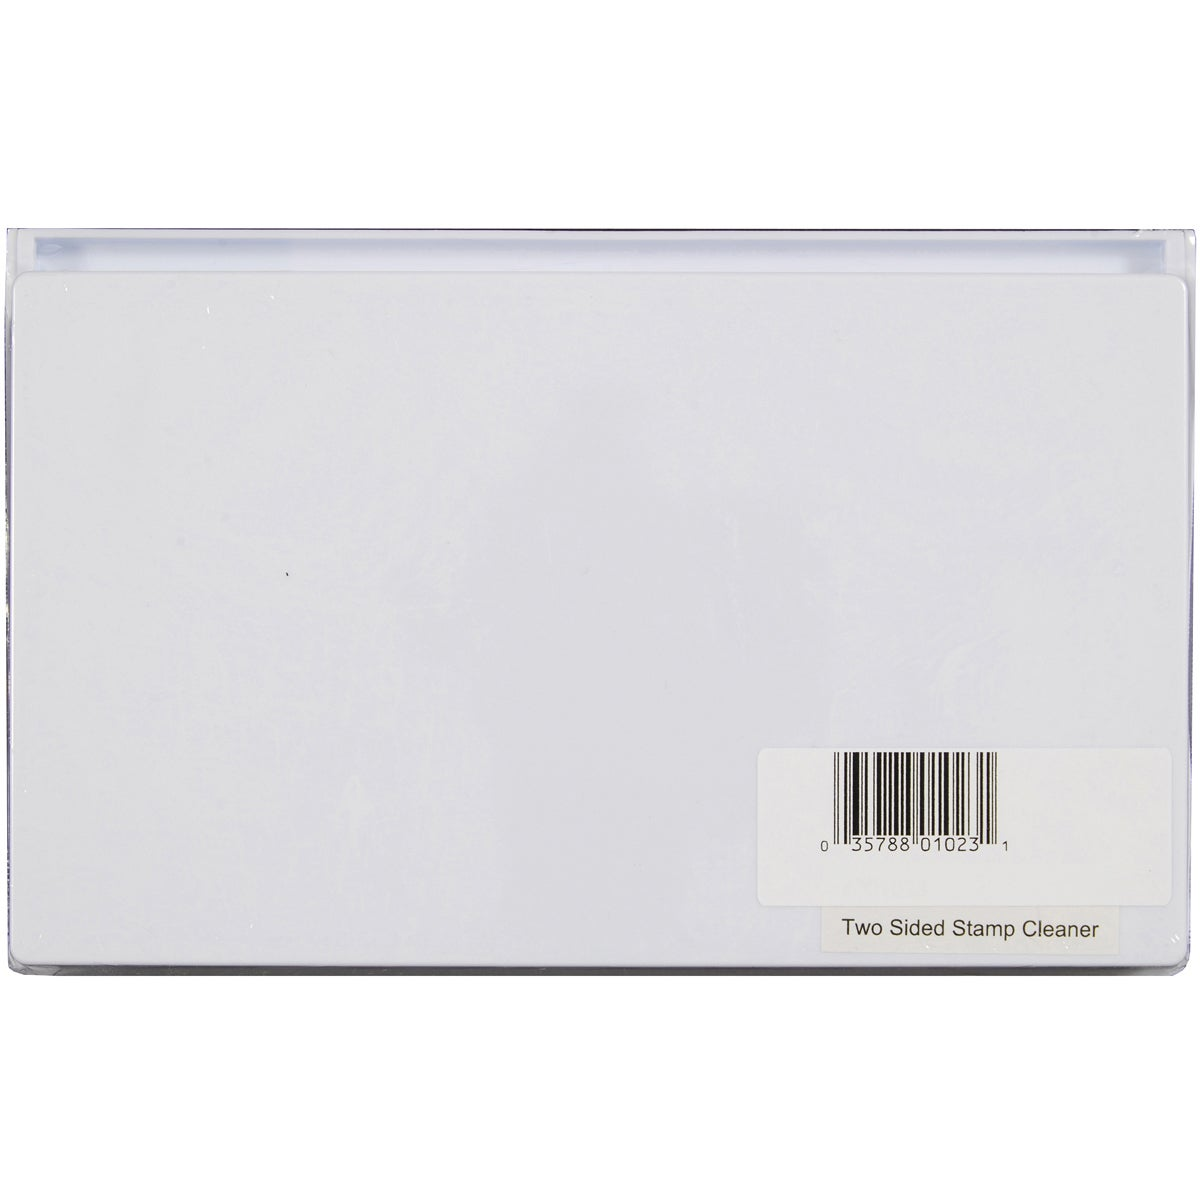 Hot Off The Press White Two-sided Plastic Decorative Stamp Cleaner